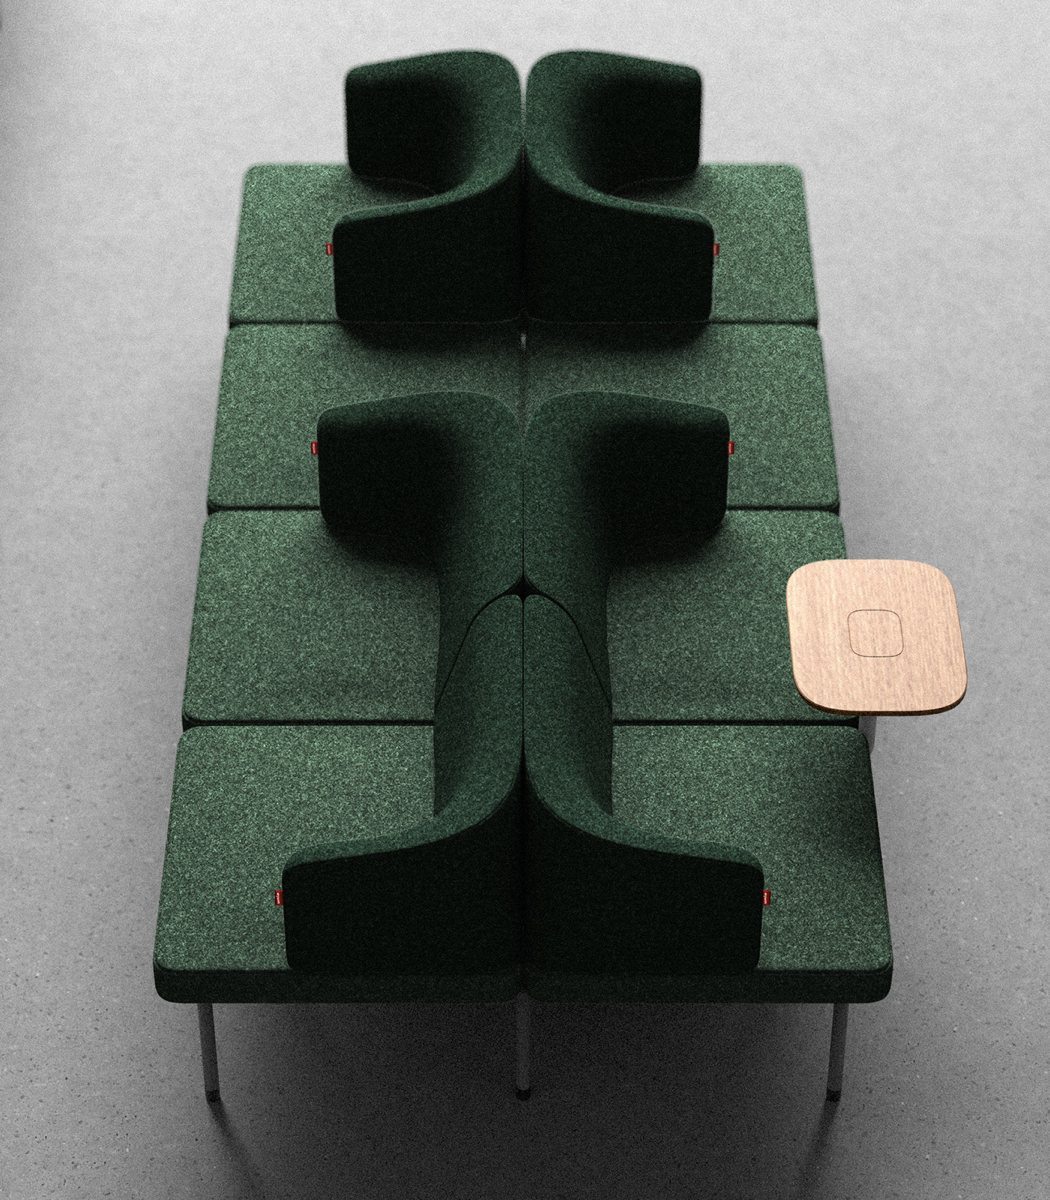 unio_seating_05